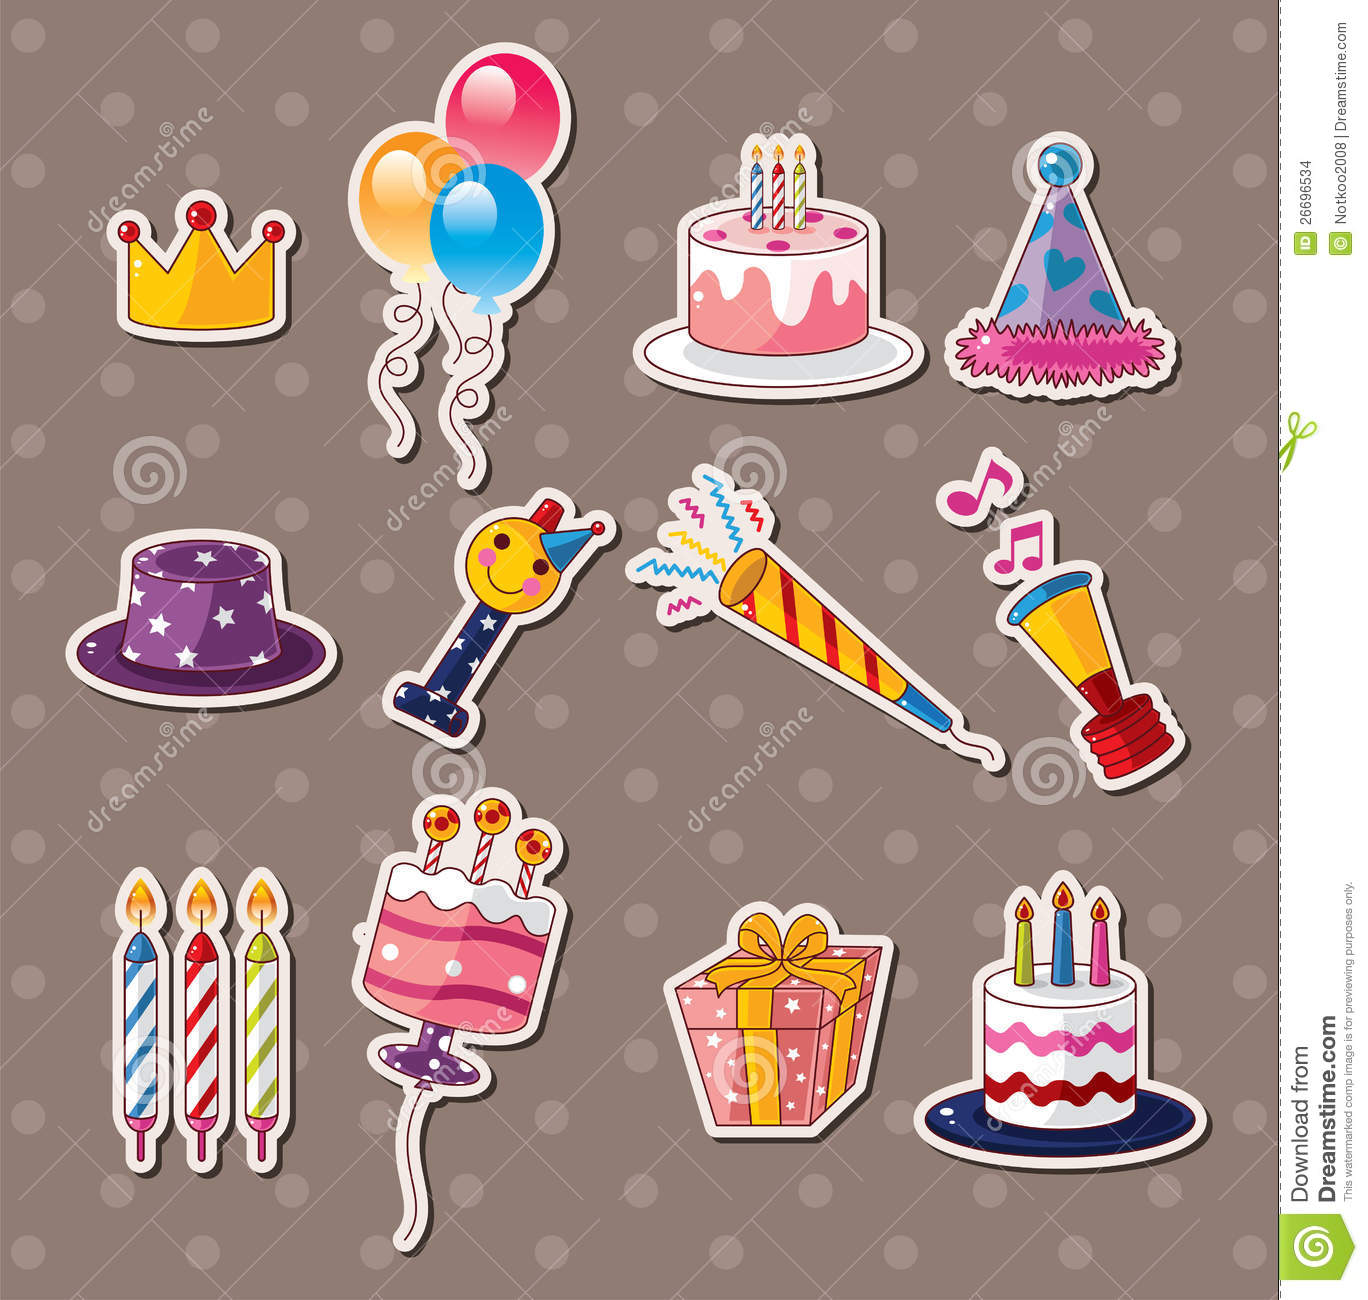 Birthday stickers